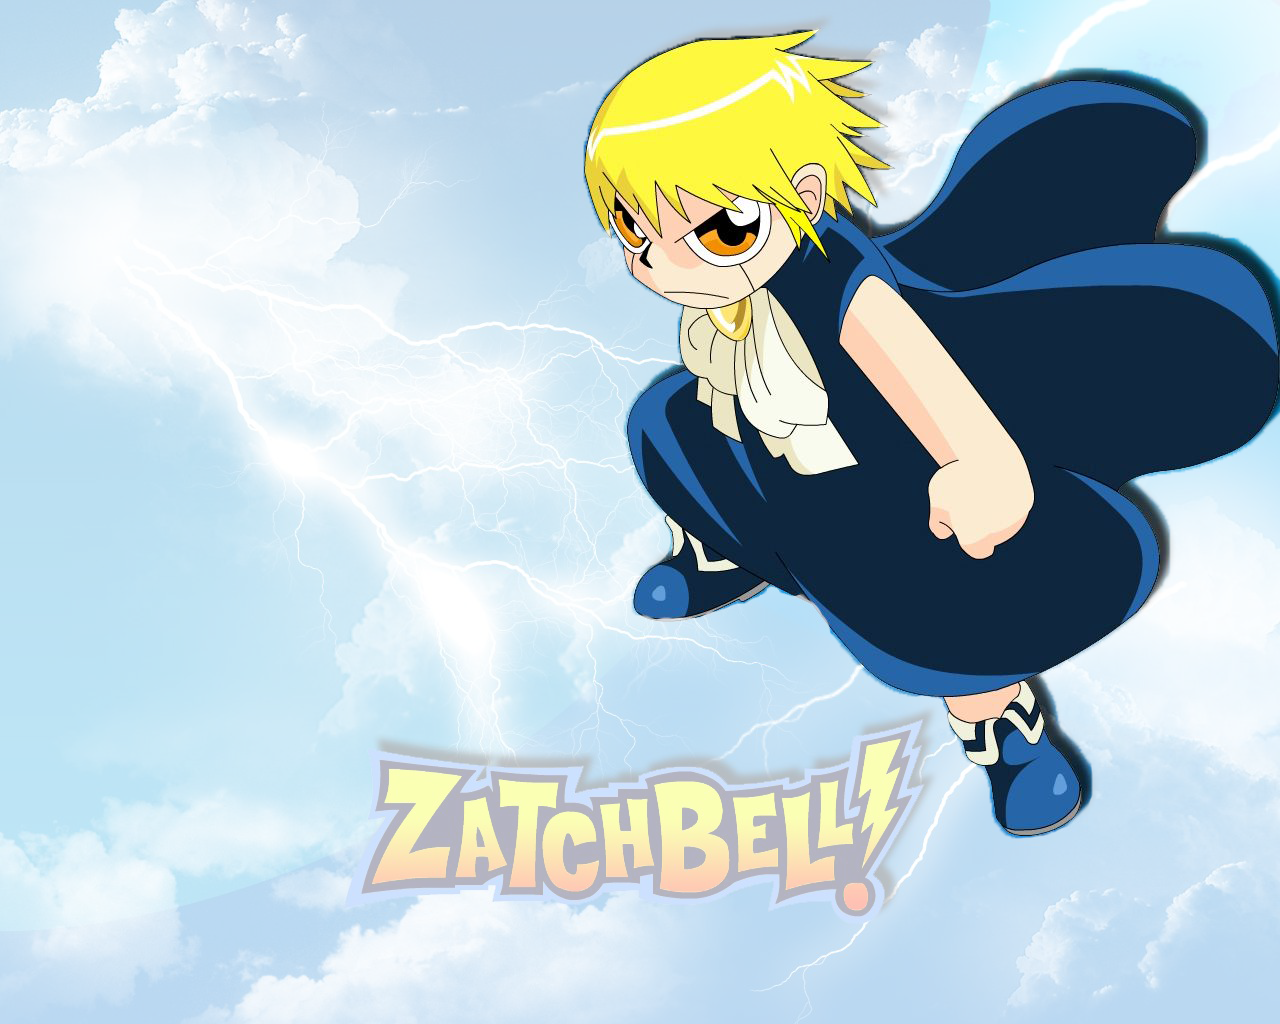 Debi Derryberry voice of Zatch Bell